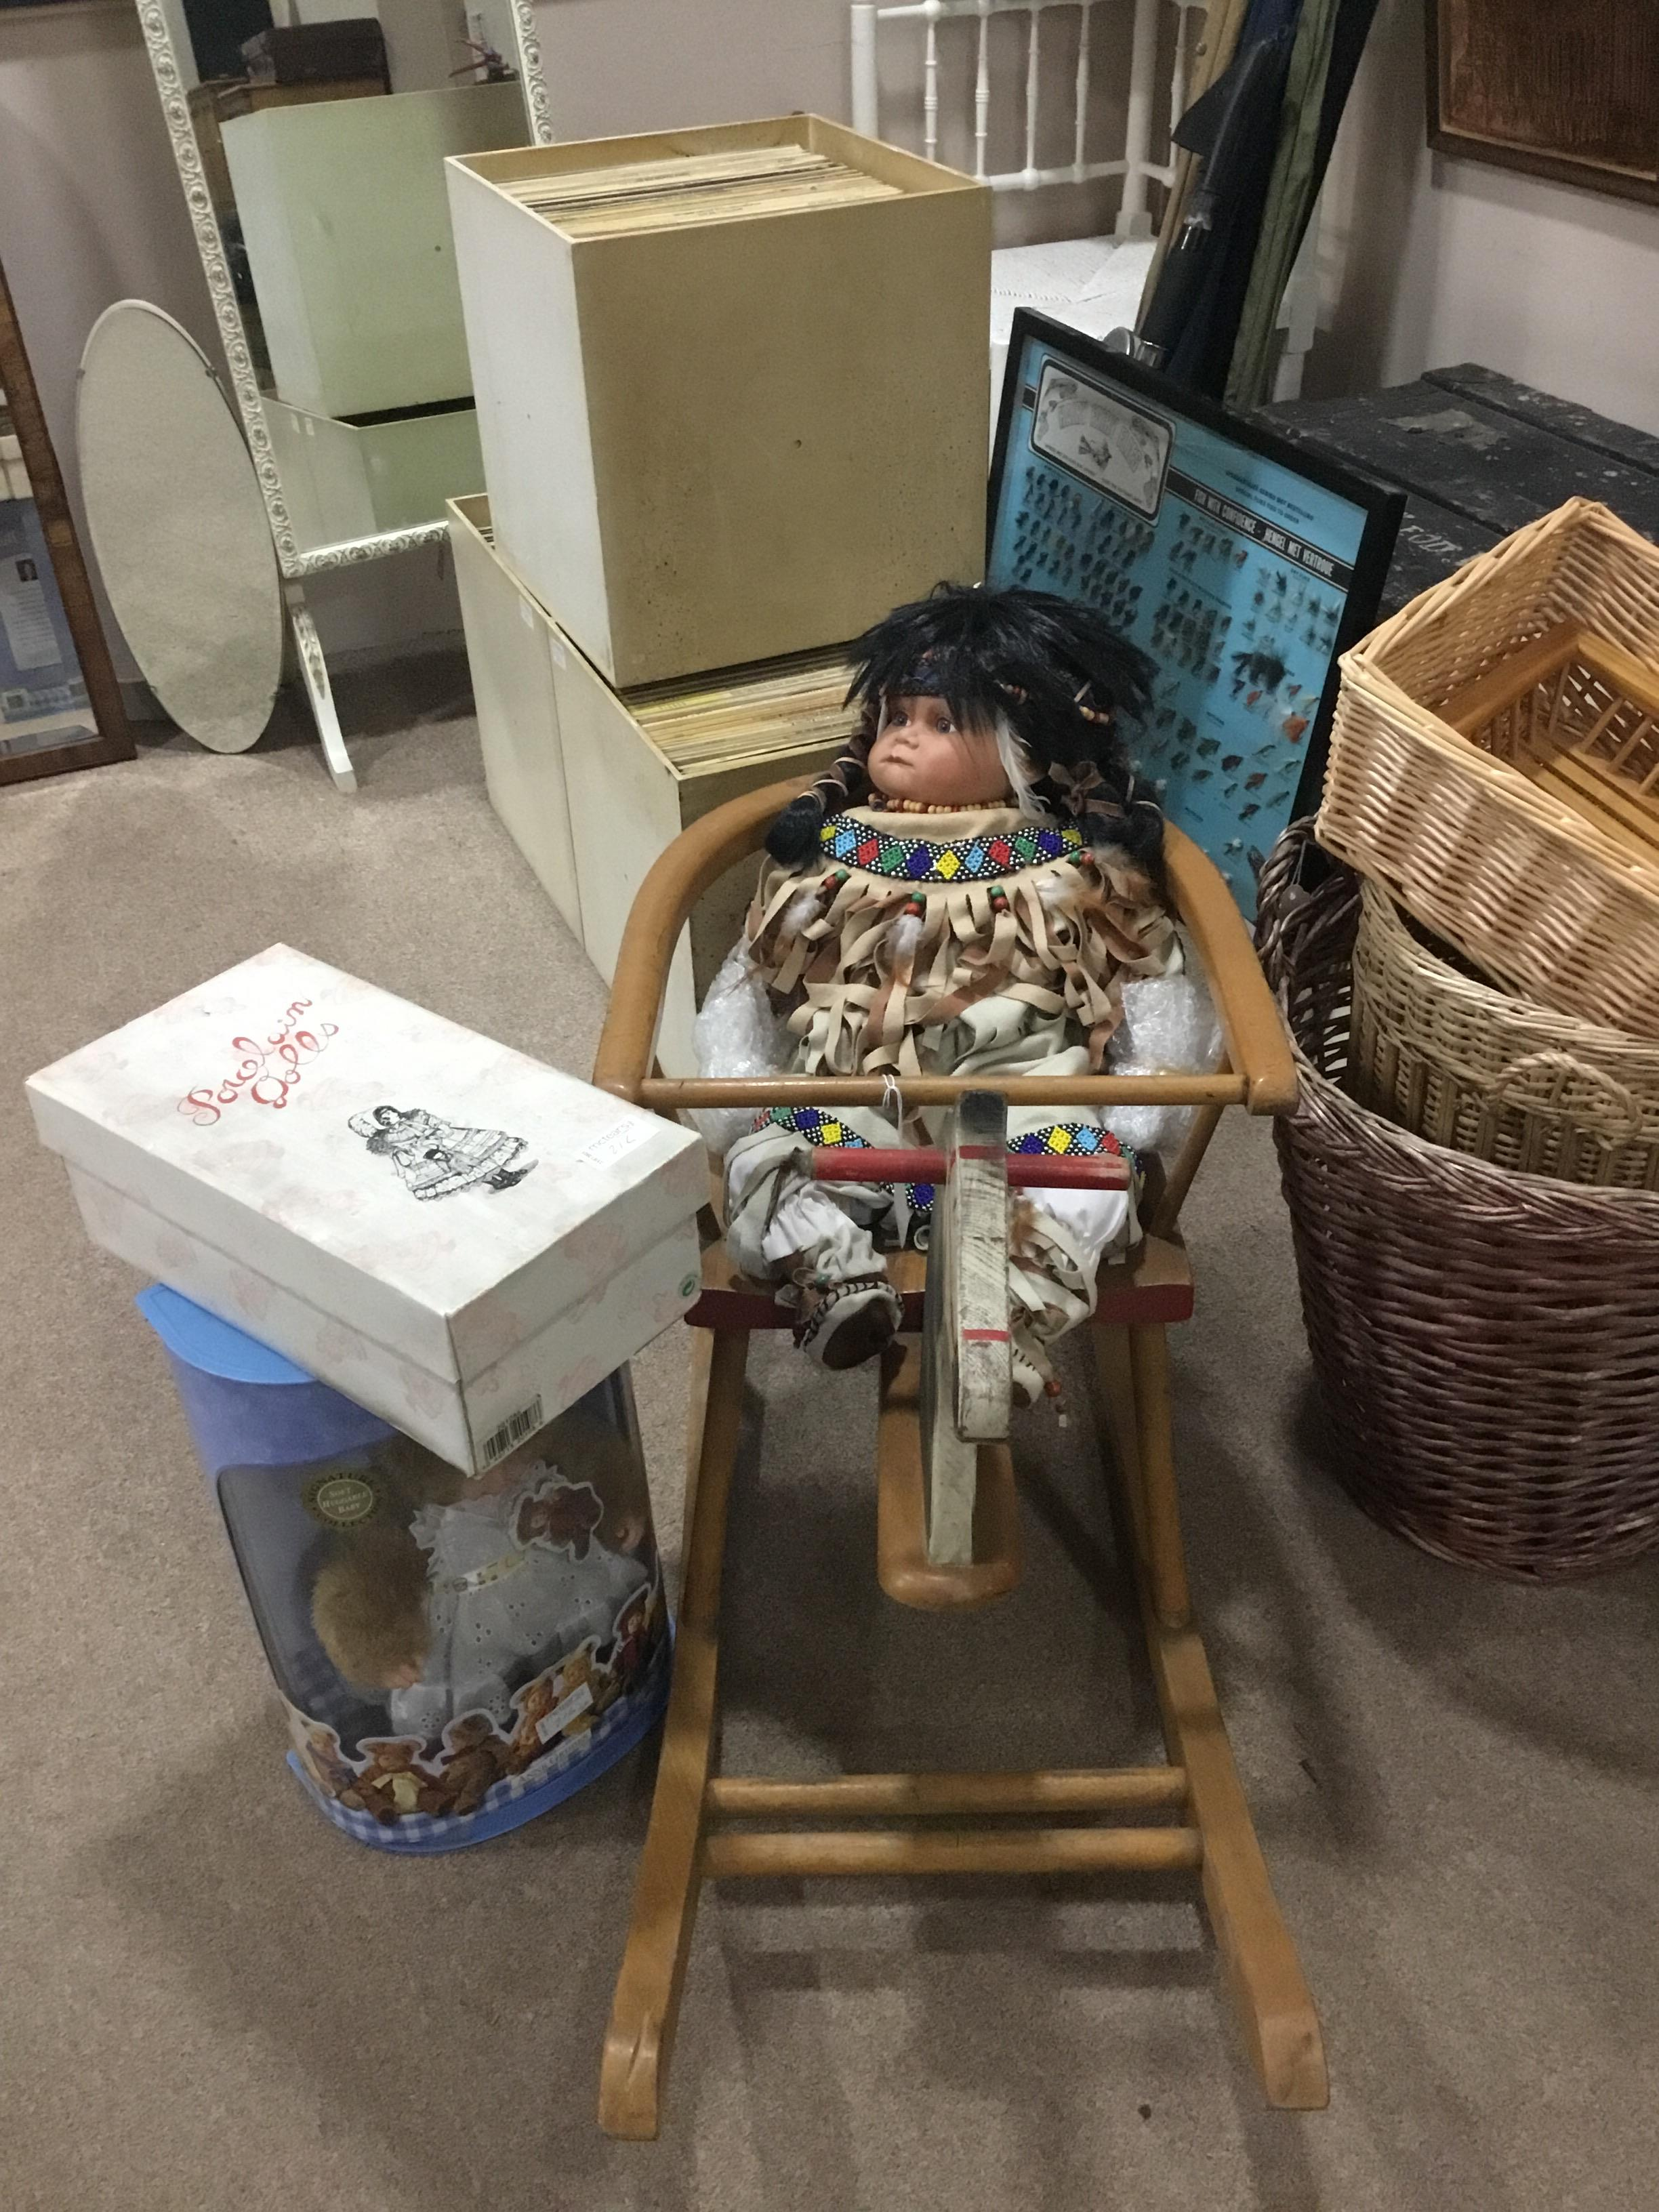 A MID 20TH CENTURY CHILD'S TOY ROCKER AND THREE DOLLS